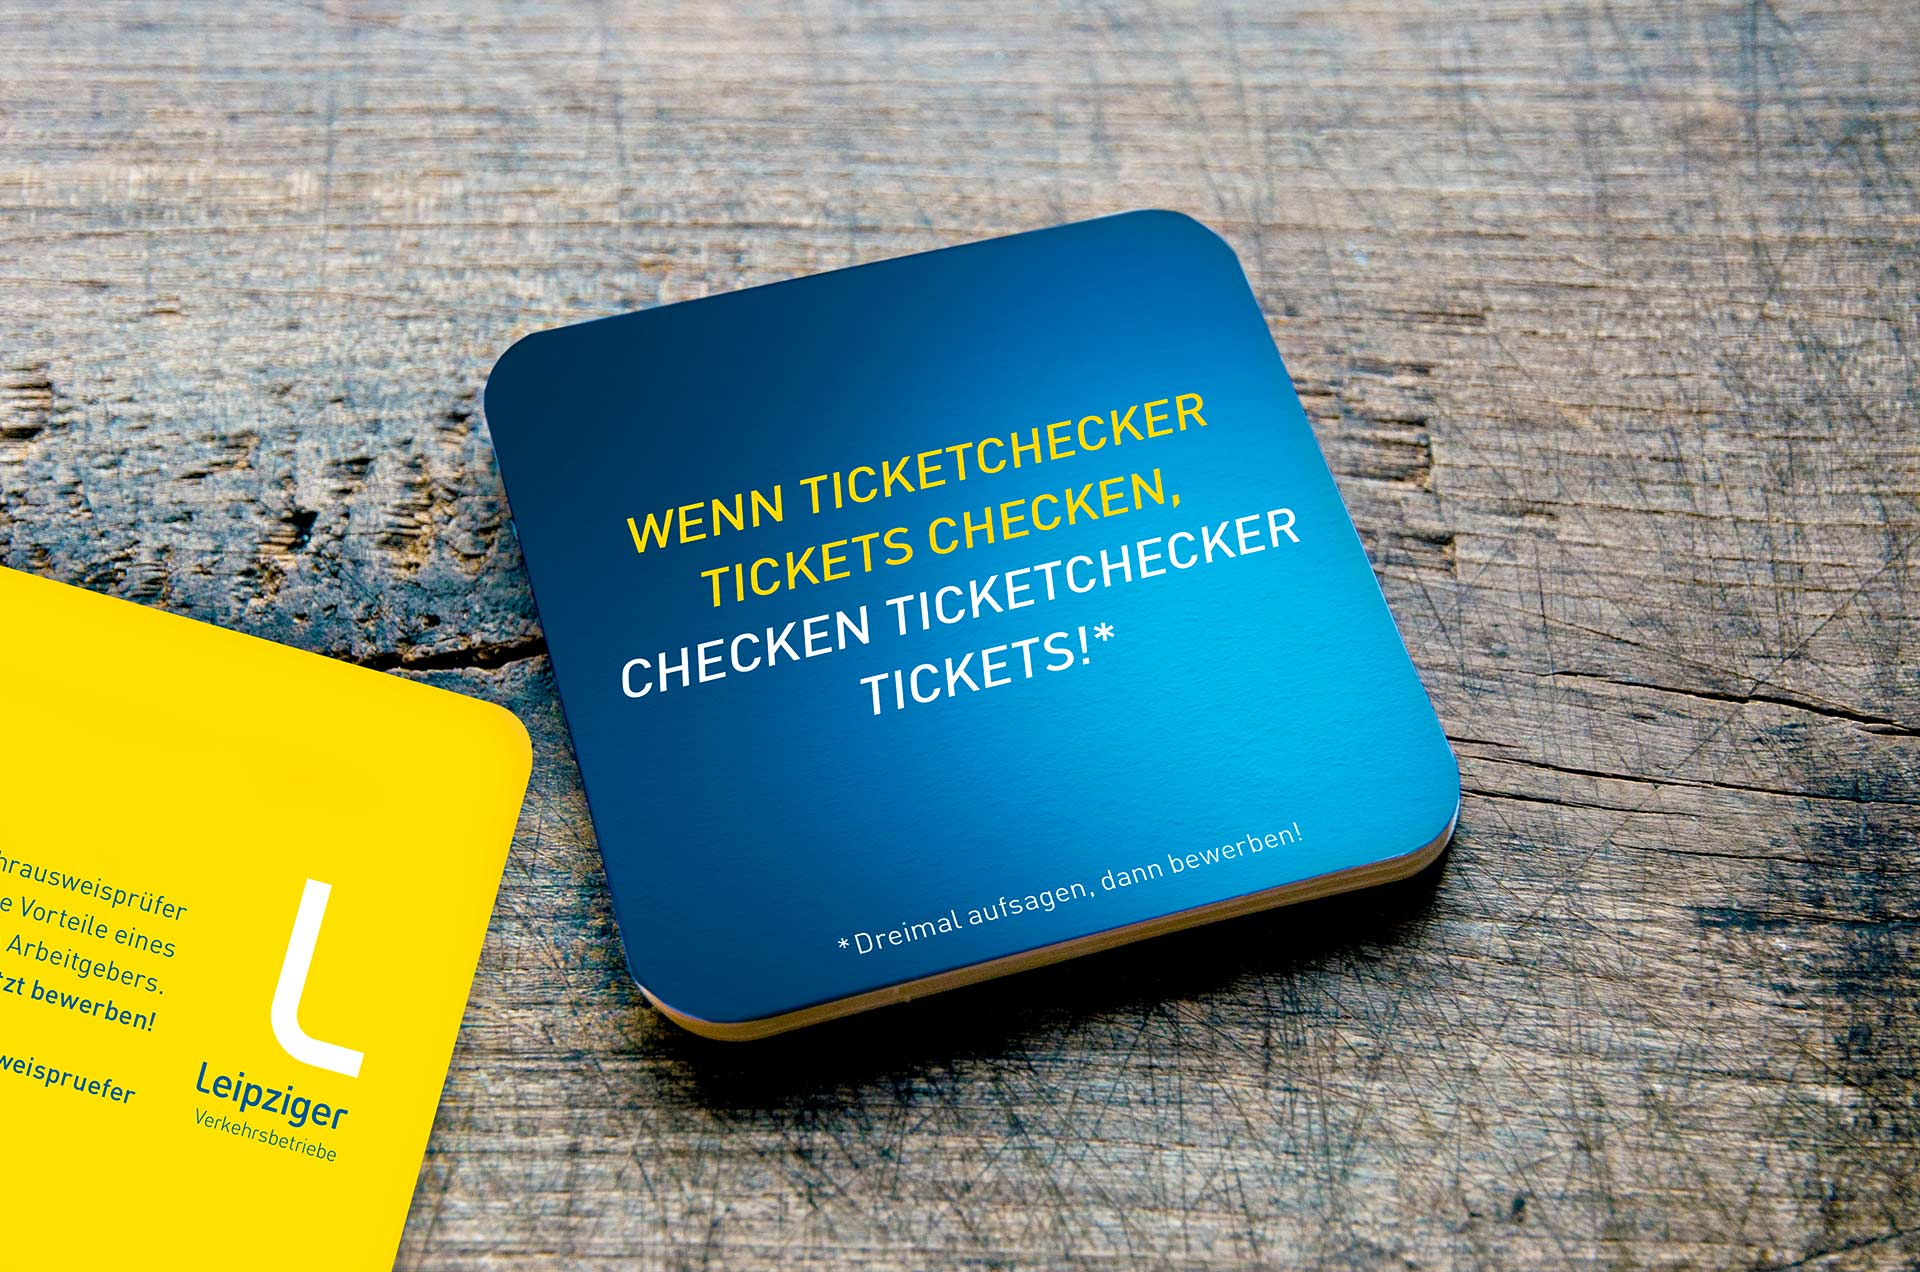 Bierdeckel: Wenn Ticketchecker Tickets checken ...